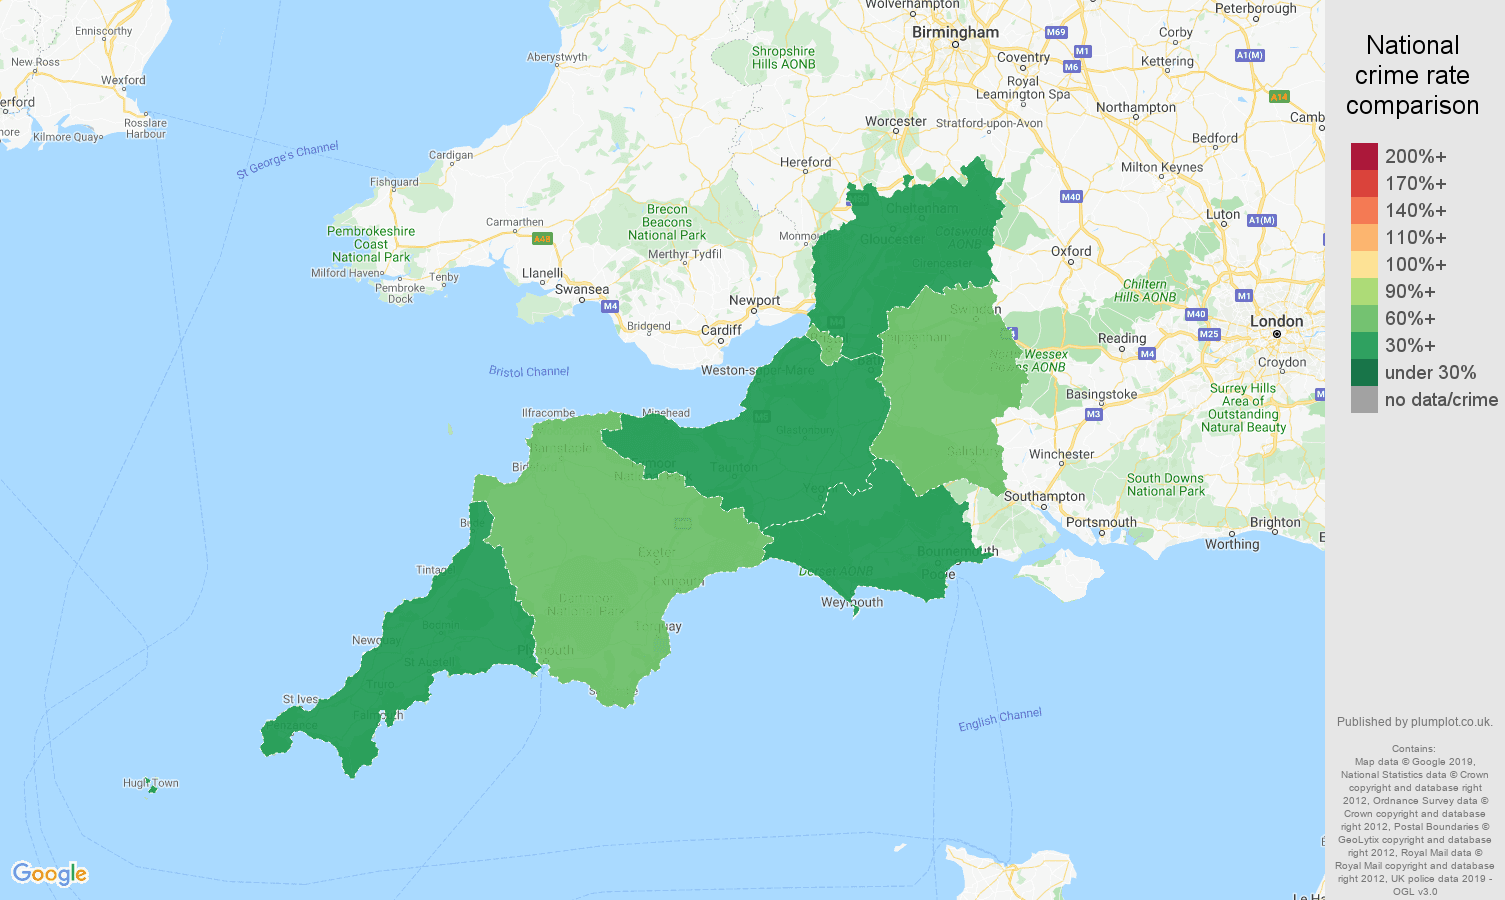 South West possession of weapons crime rate comparison map